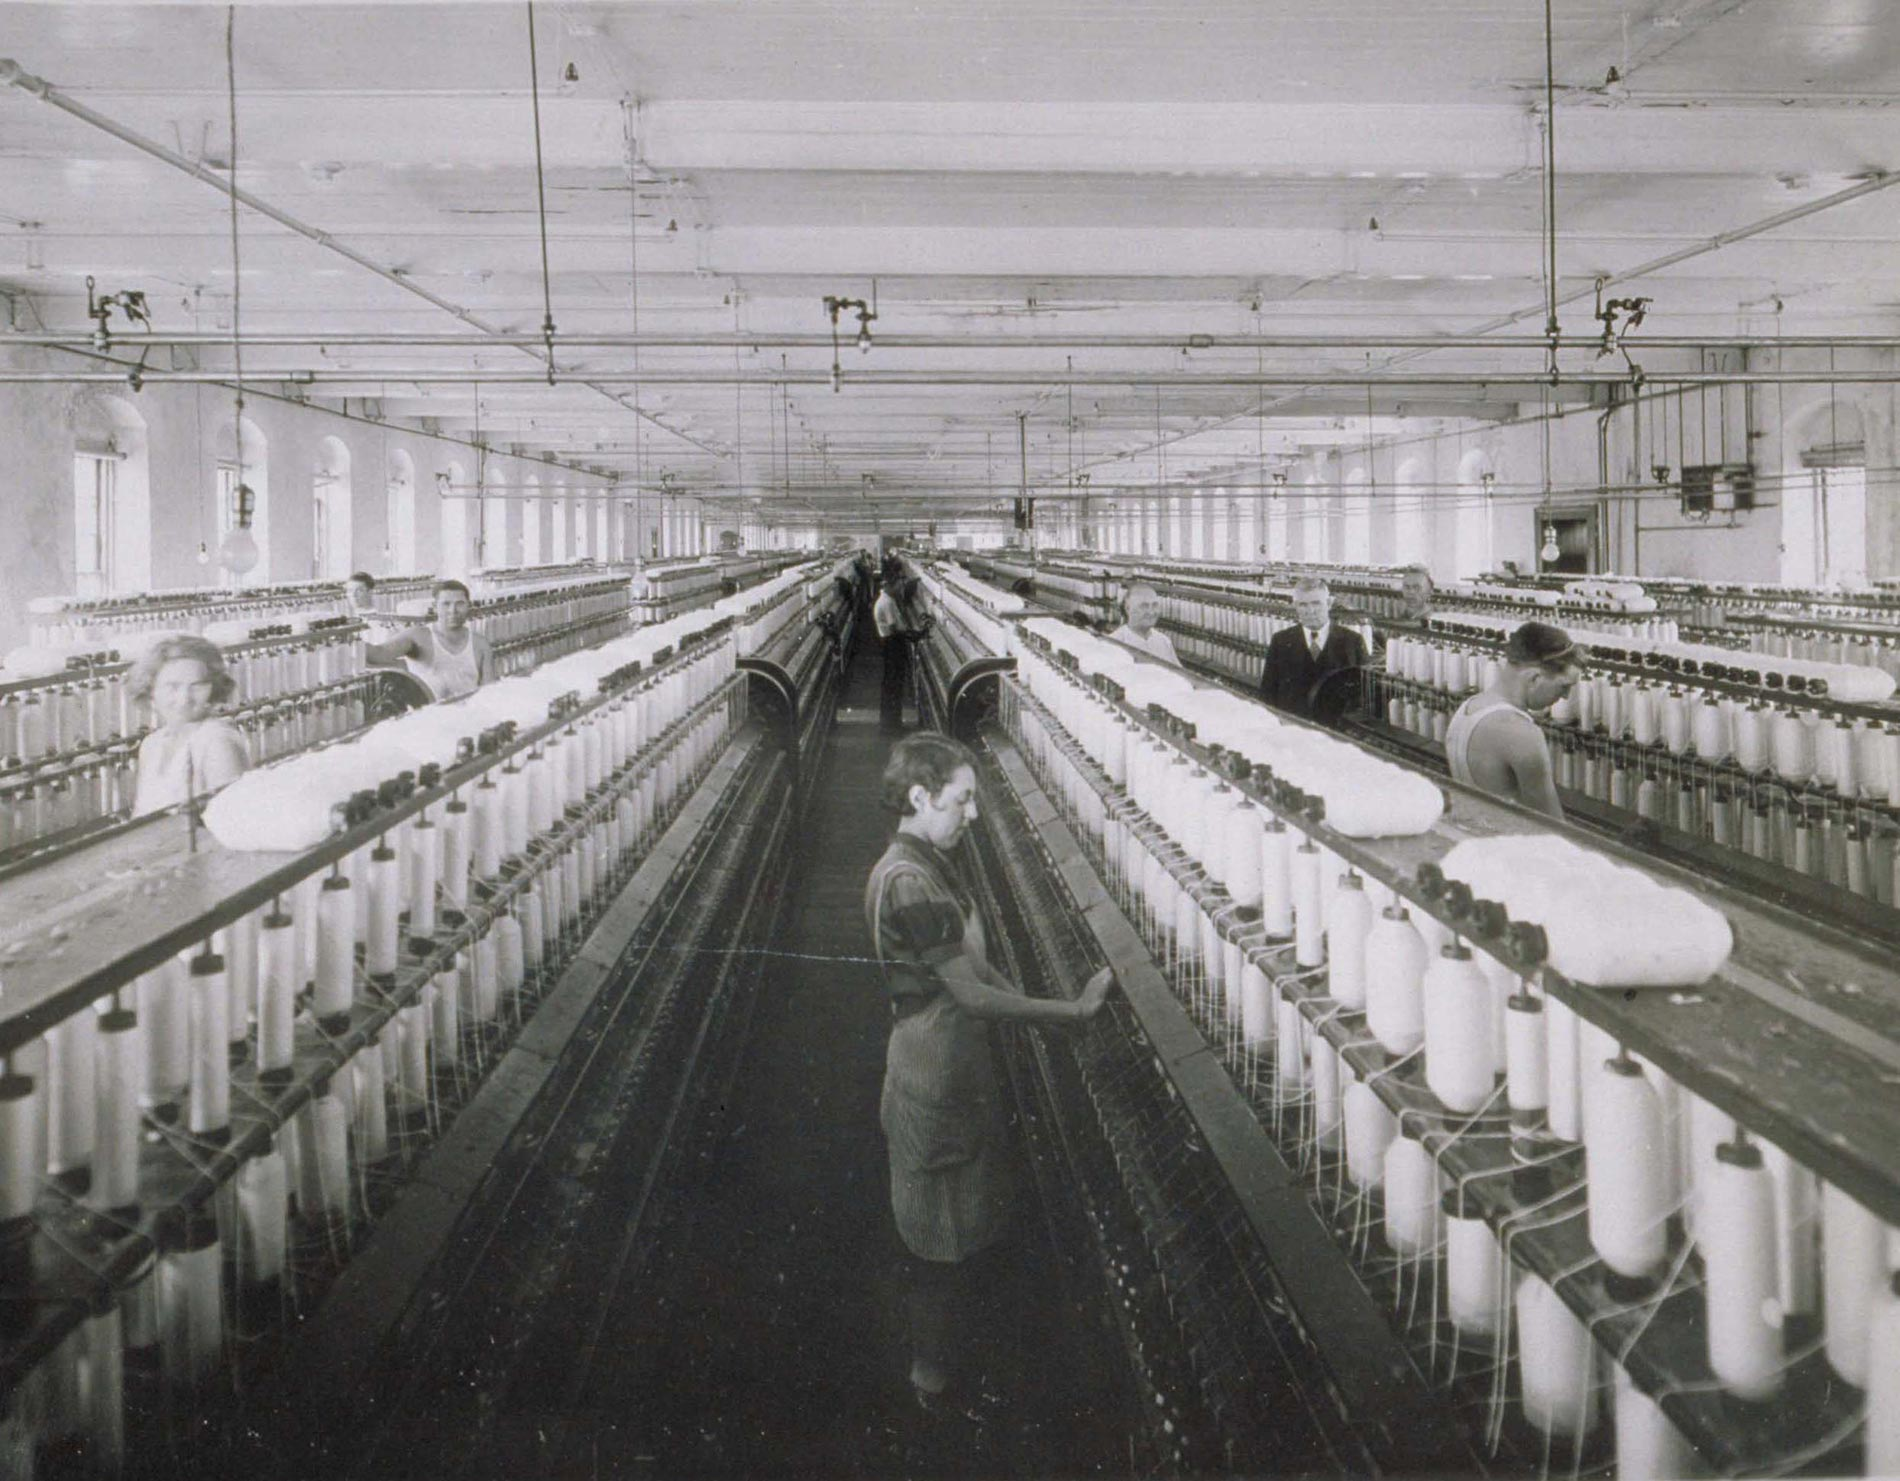 Workers on Spooling Floor